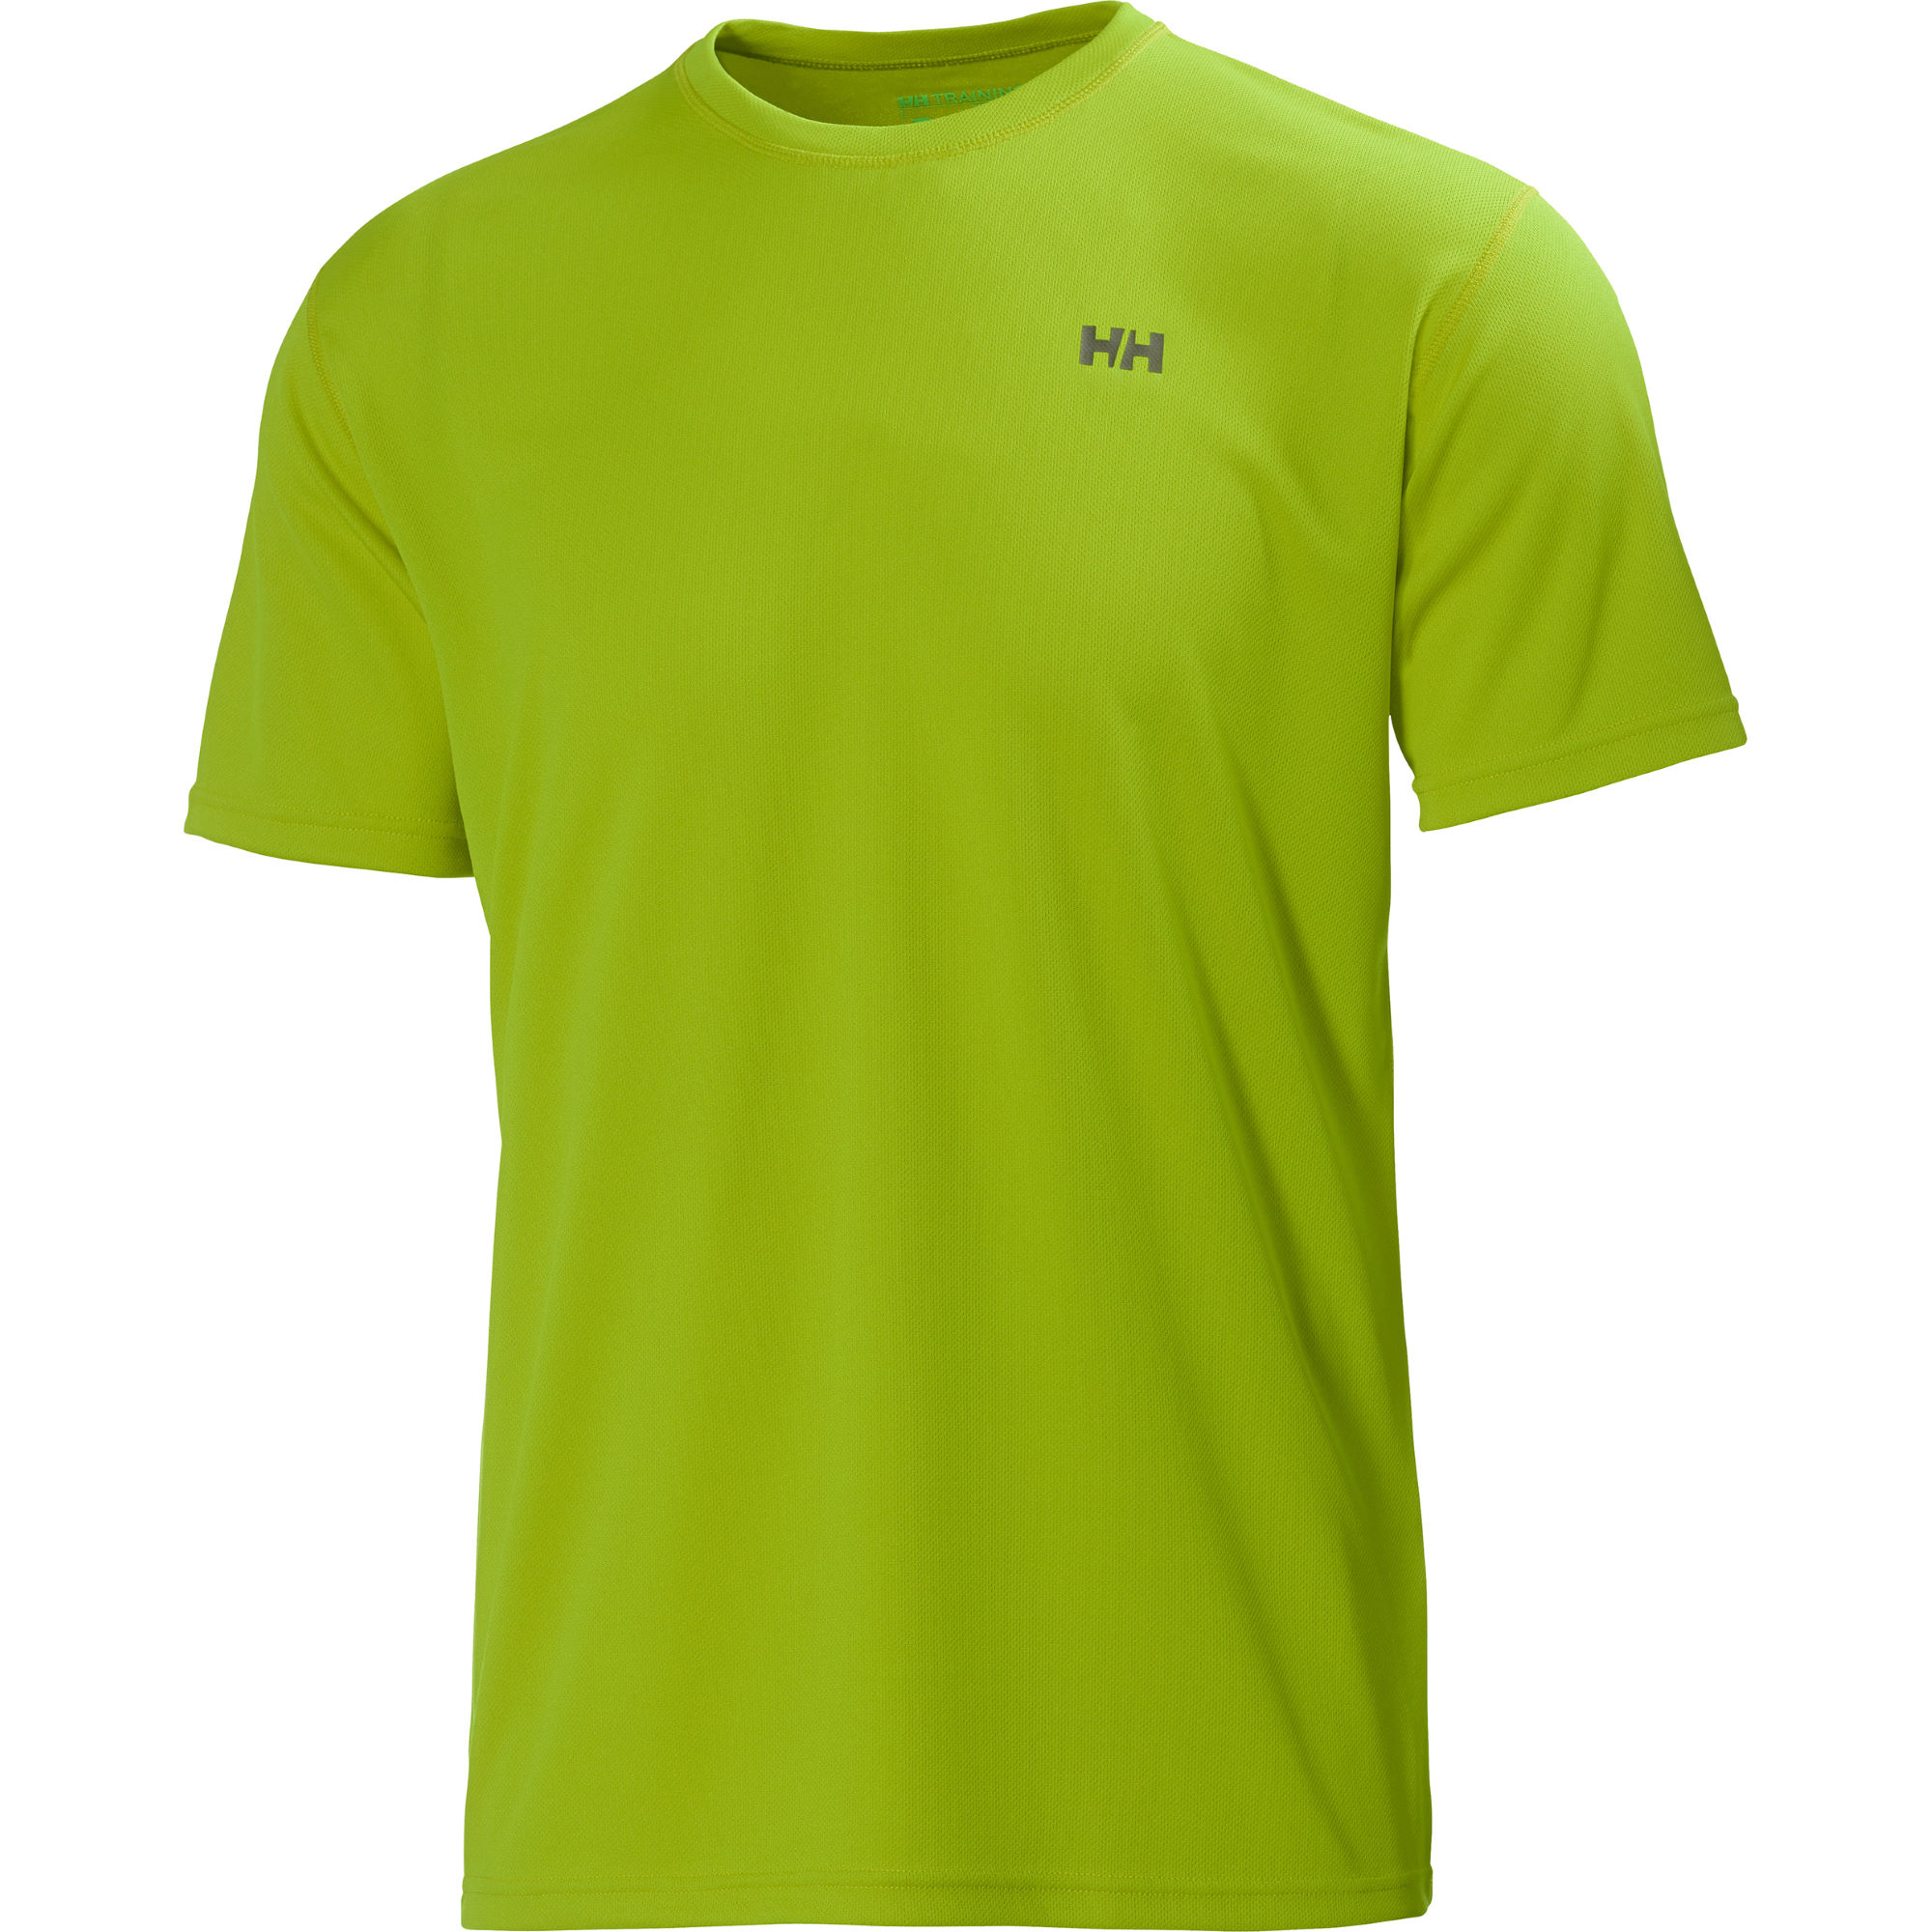 wiggle helly hansen training t shirt ss14 running